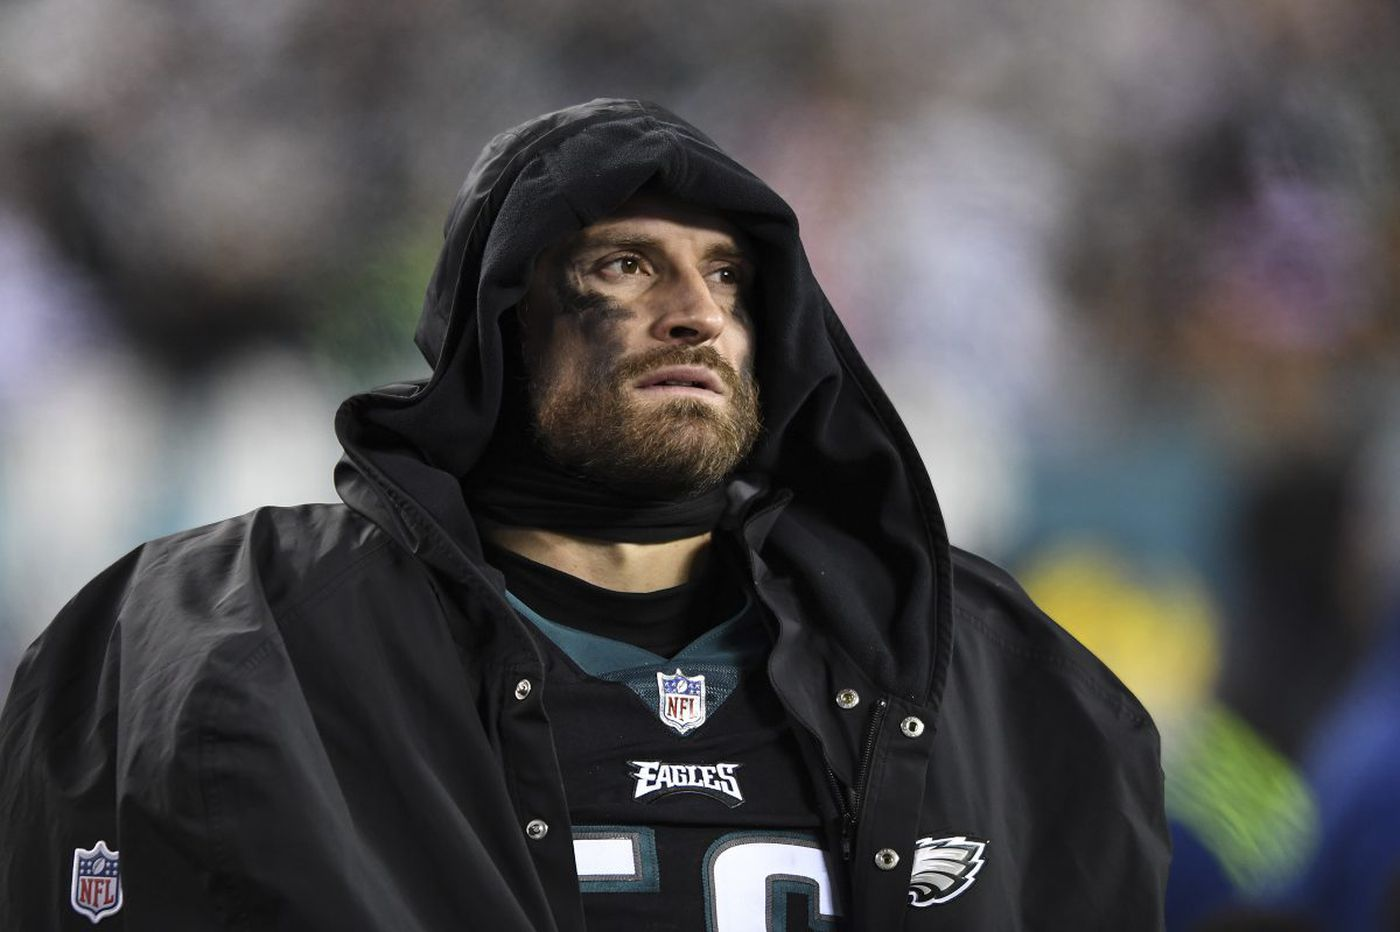 Eagles' Chris Long flattered by shout-out from Barack Obama